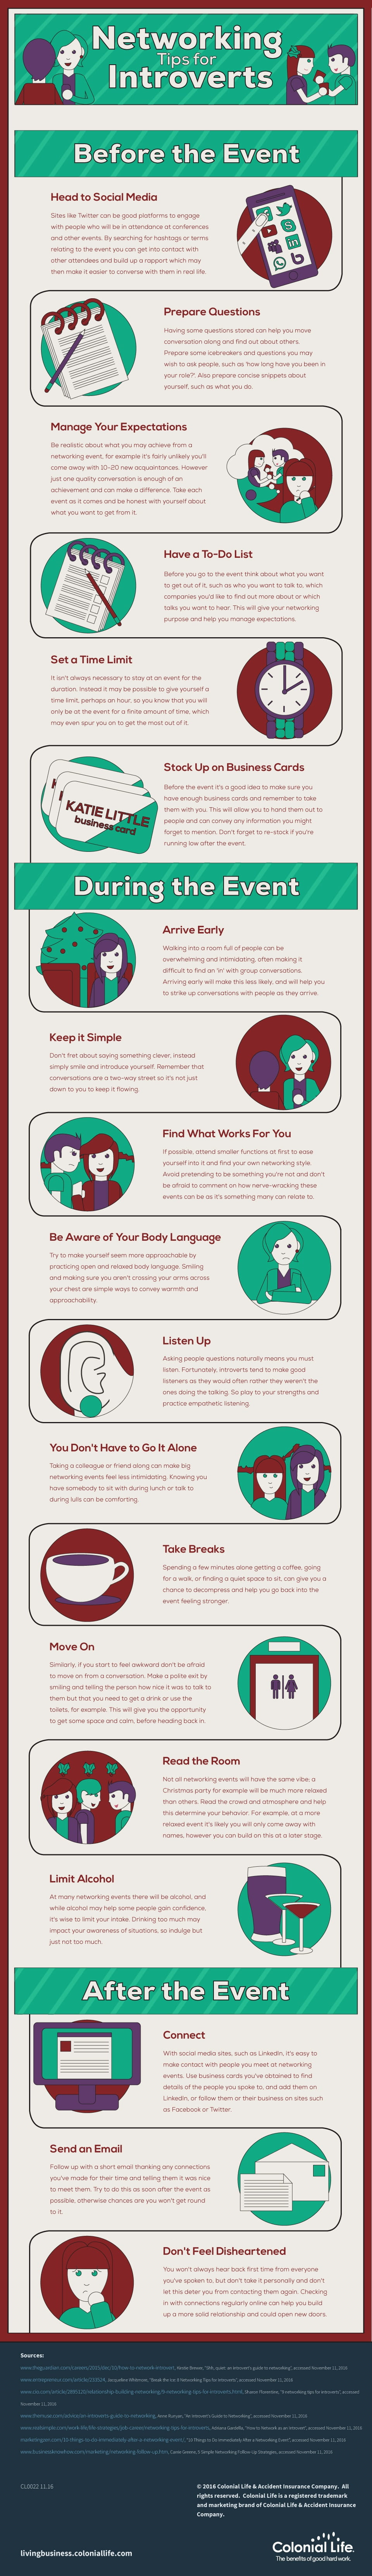 Networking tips for introverts - infographic